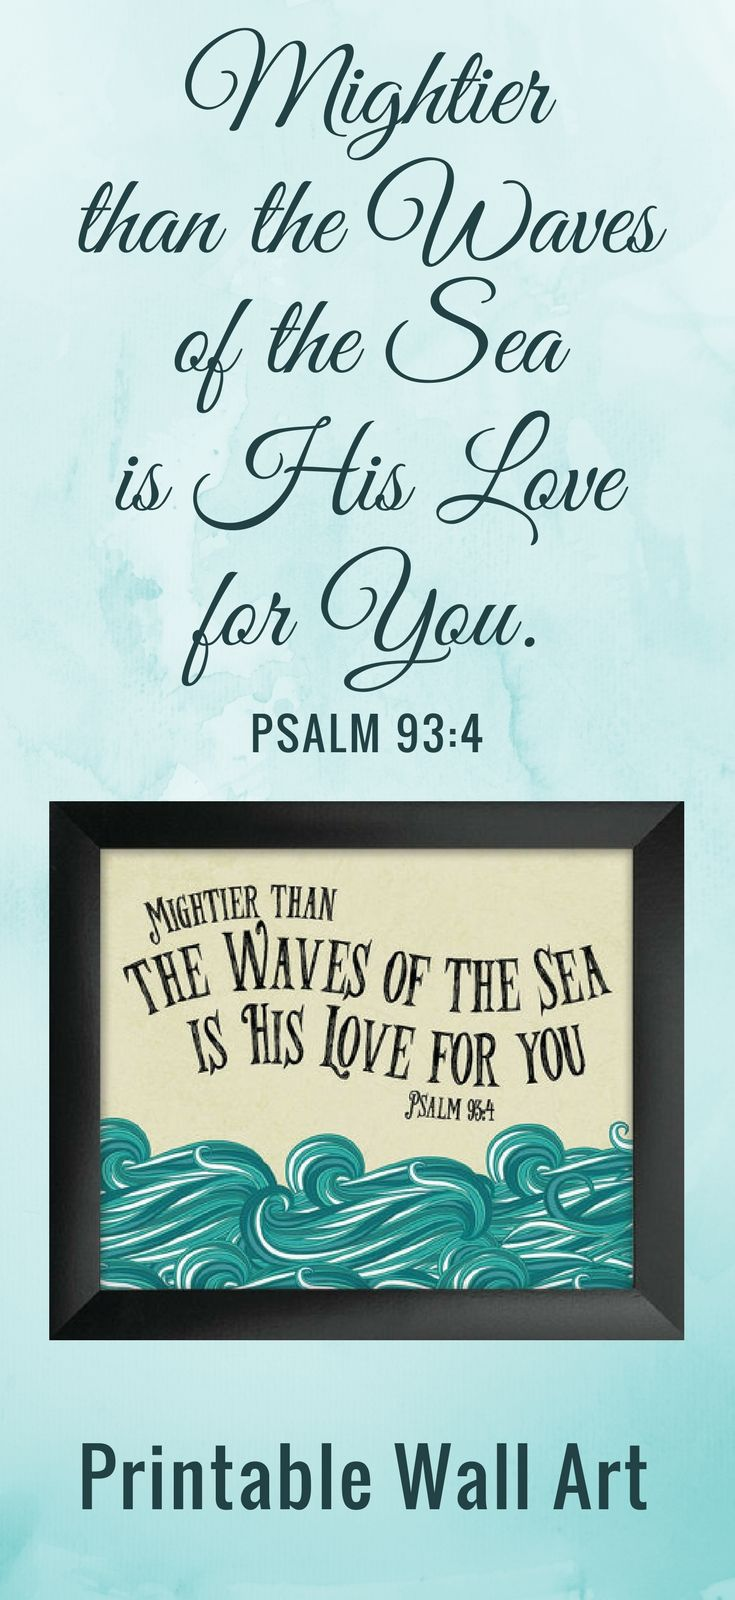 Mightier than the Waves of the Sea Bible Verse Printable | Scripture Print | Christian | Nursery Decor | Psalm 93:4 | #affiliate #kidsroom  #bathroomdecor #bible  #homedecor